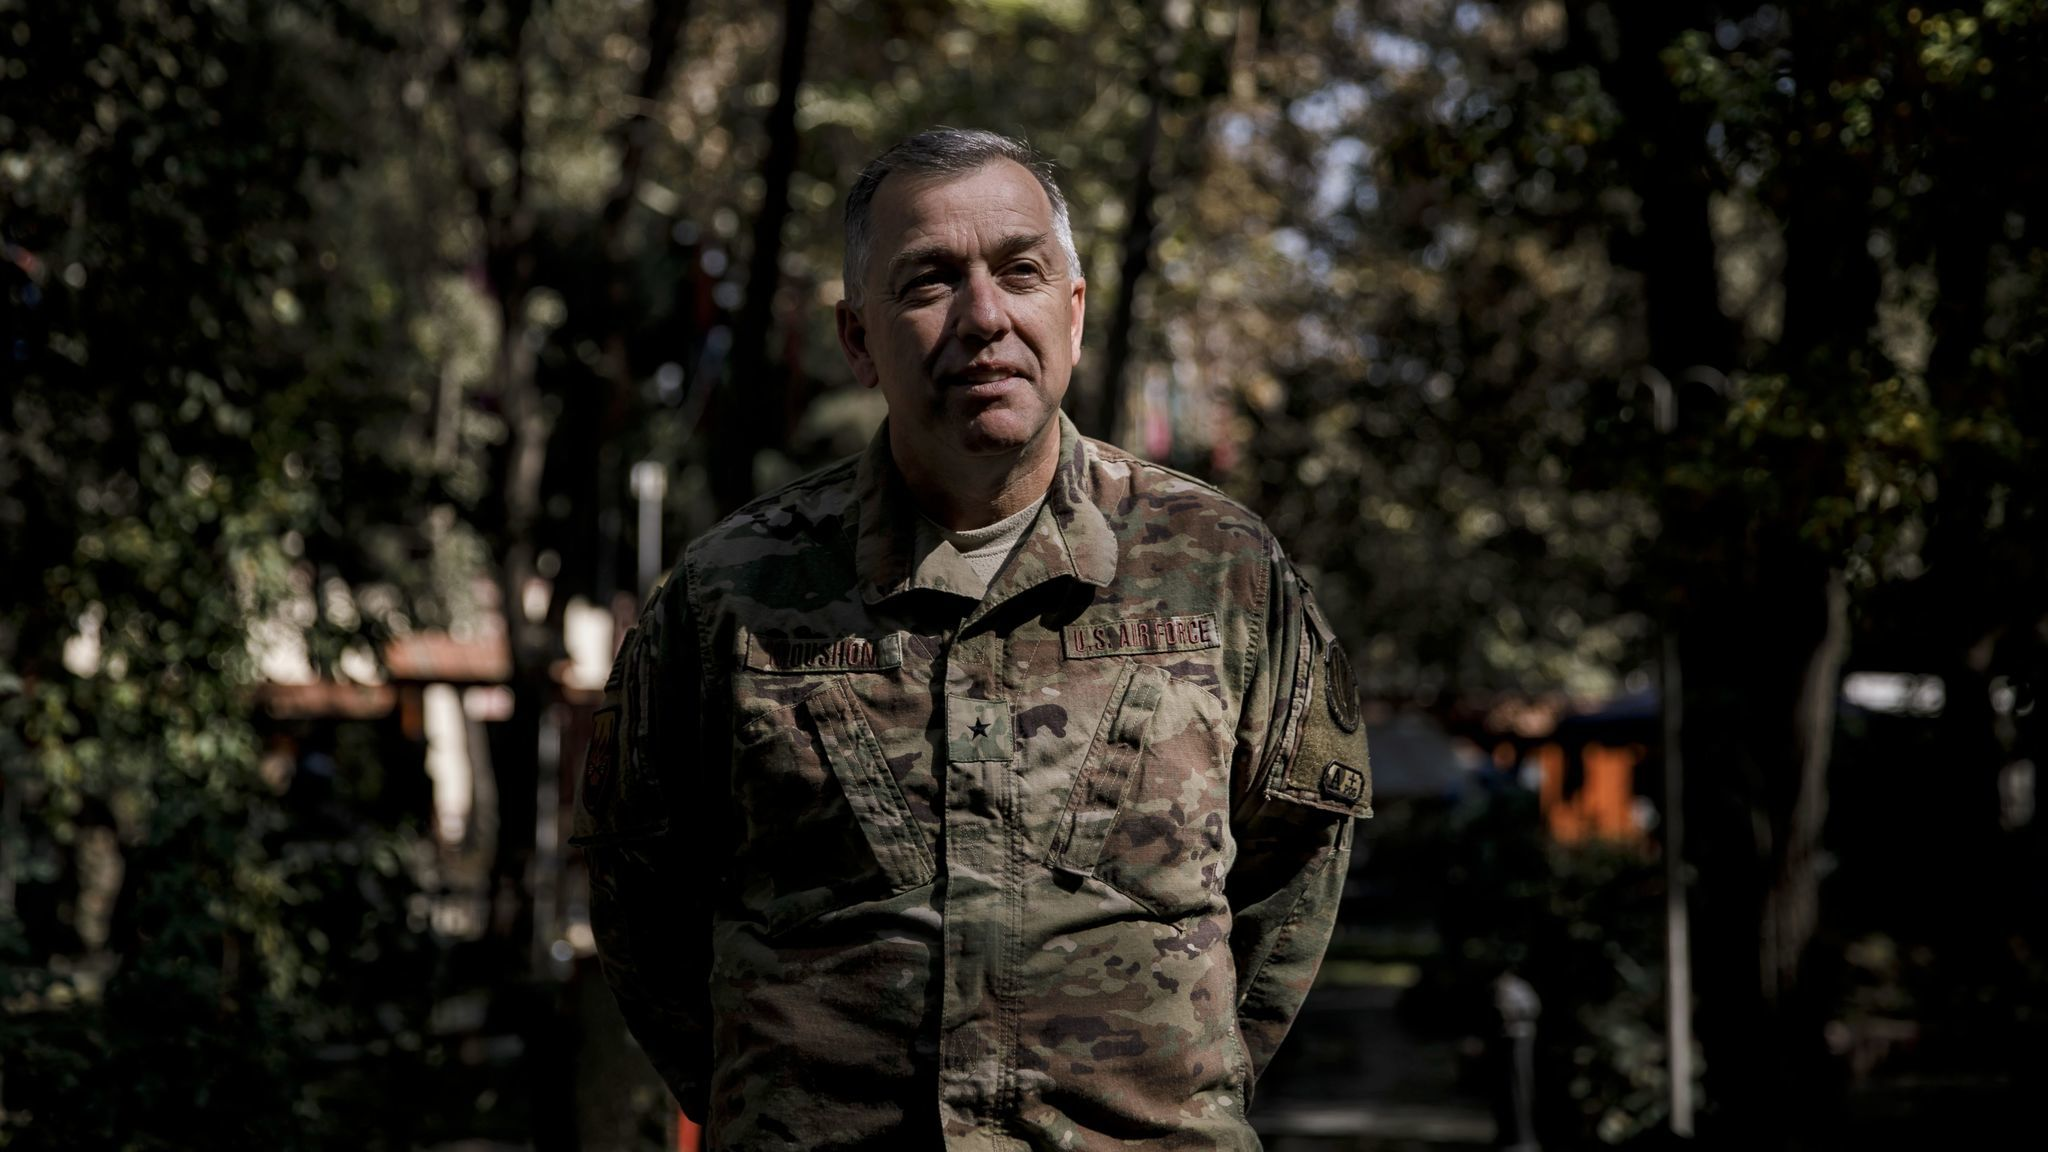 KABUL, KABUL PROVINCE — FRIDAY, OCTOBER 27, 2017: Brig. Gen. Clayton W. Moushon, the former directo